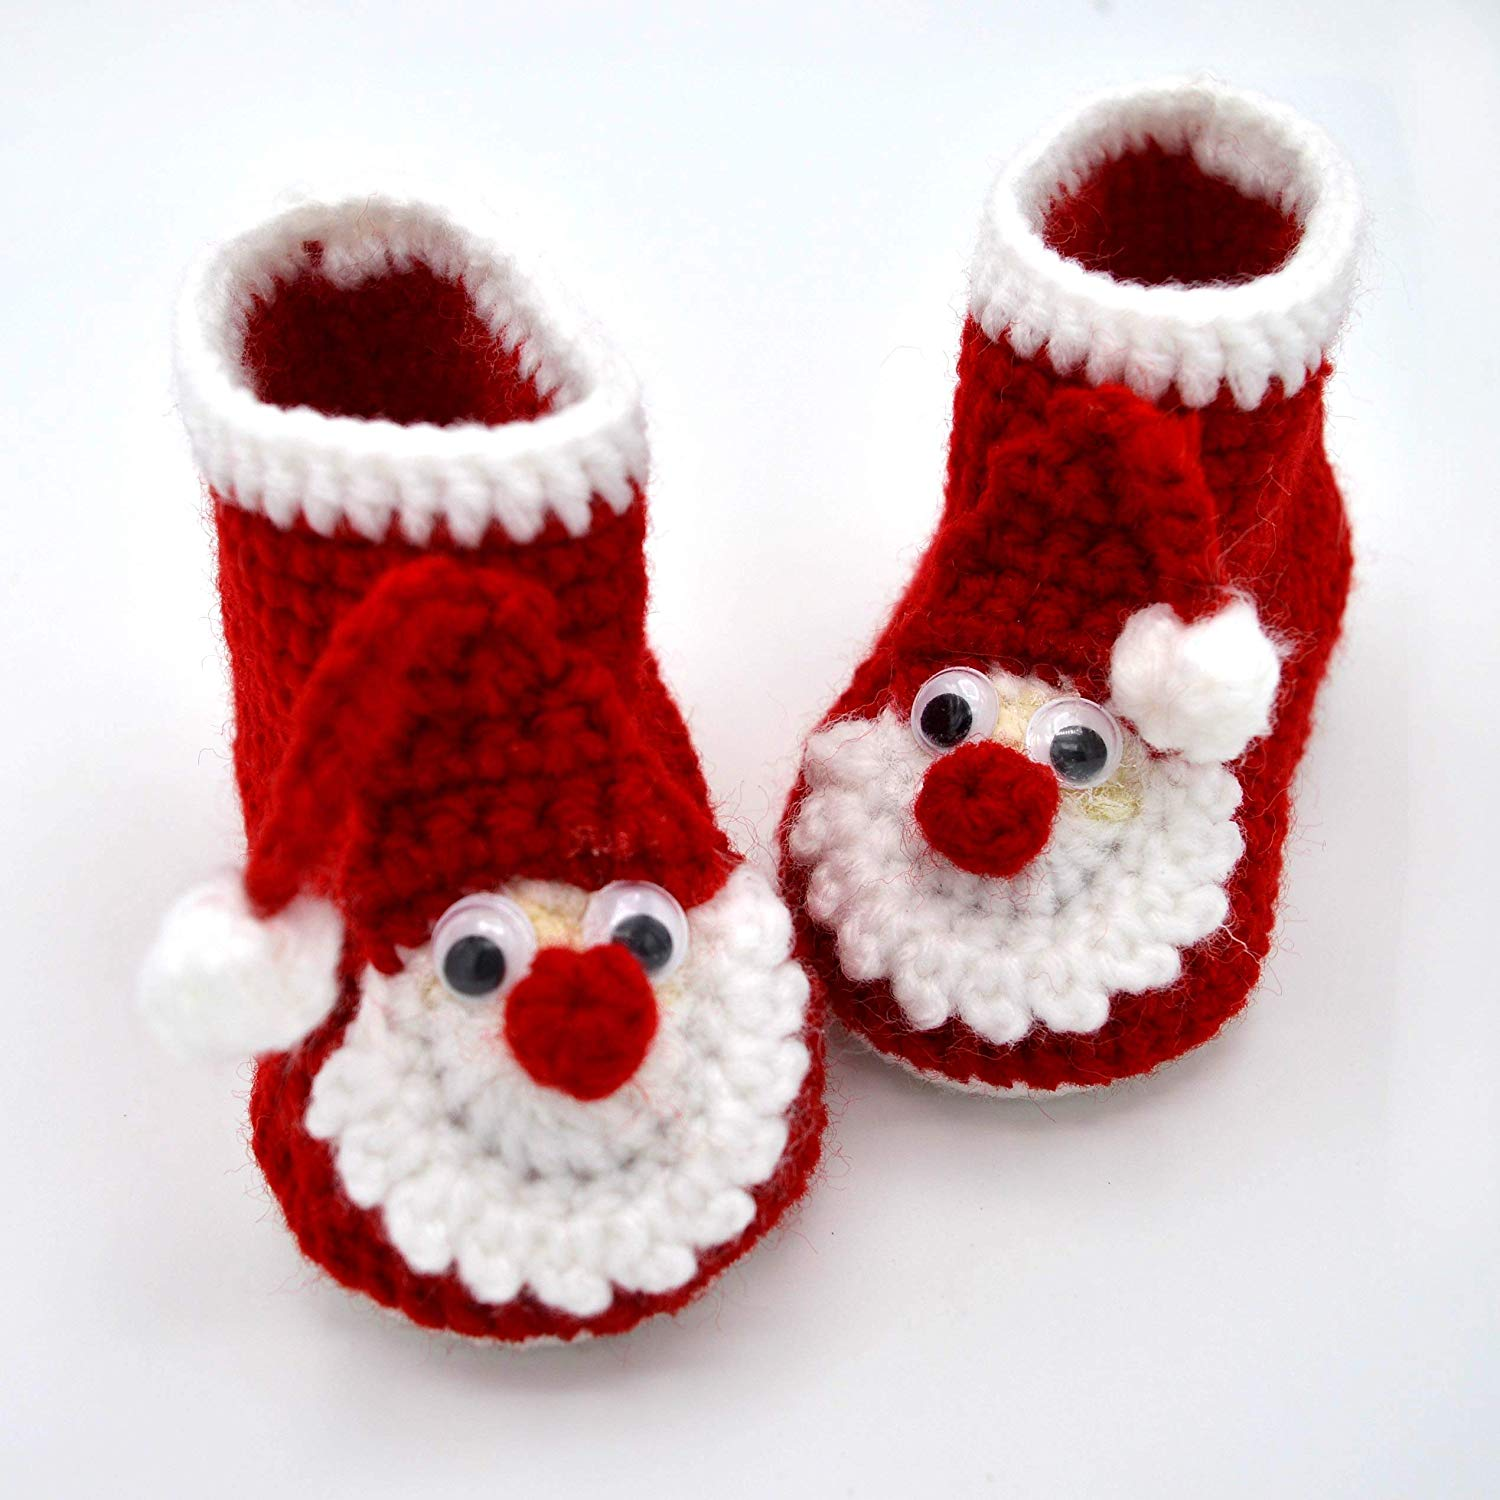 e83f67af36fcd Get Quotations · Christmas Booties, Red Baby Boots, Crib Shoes for Infant  or Newborn, Baby Shower